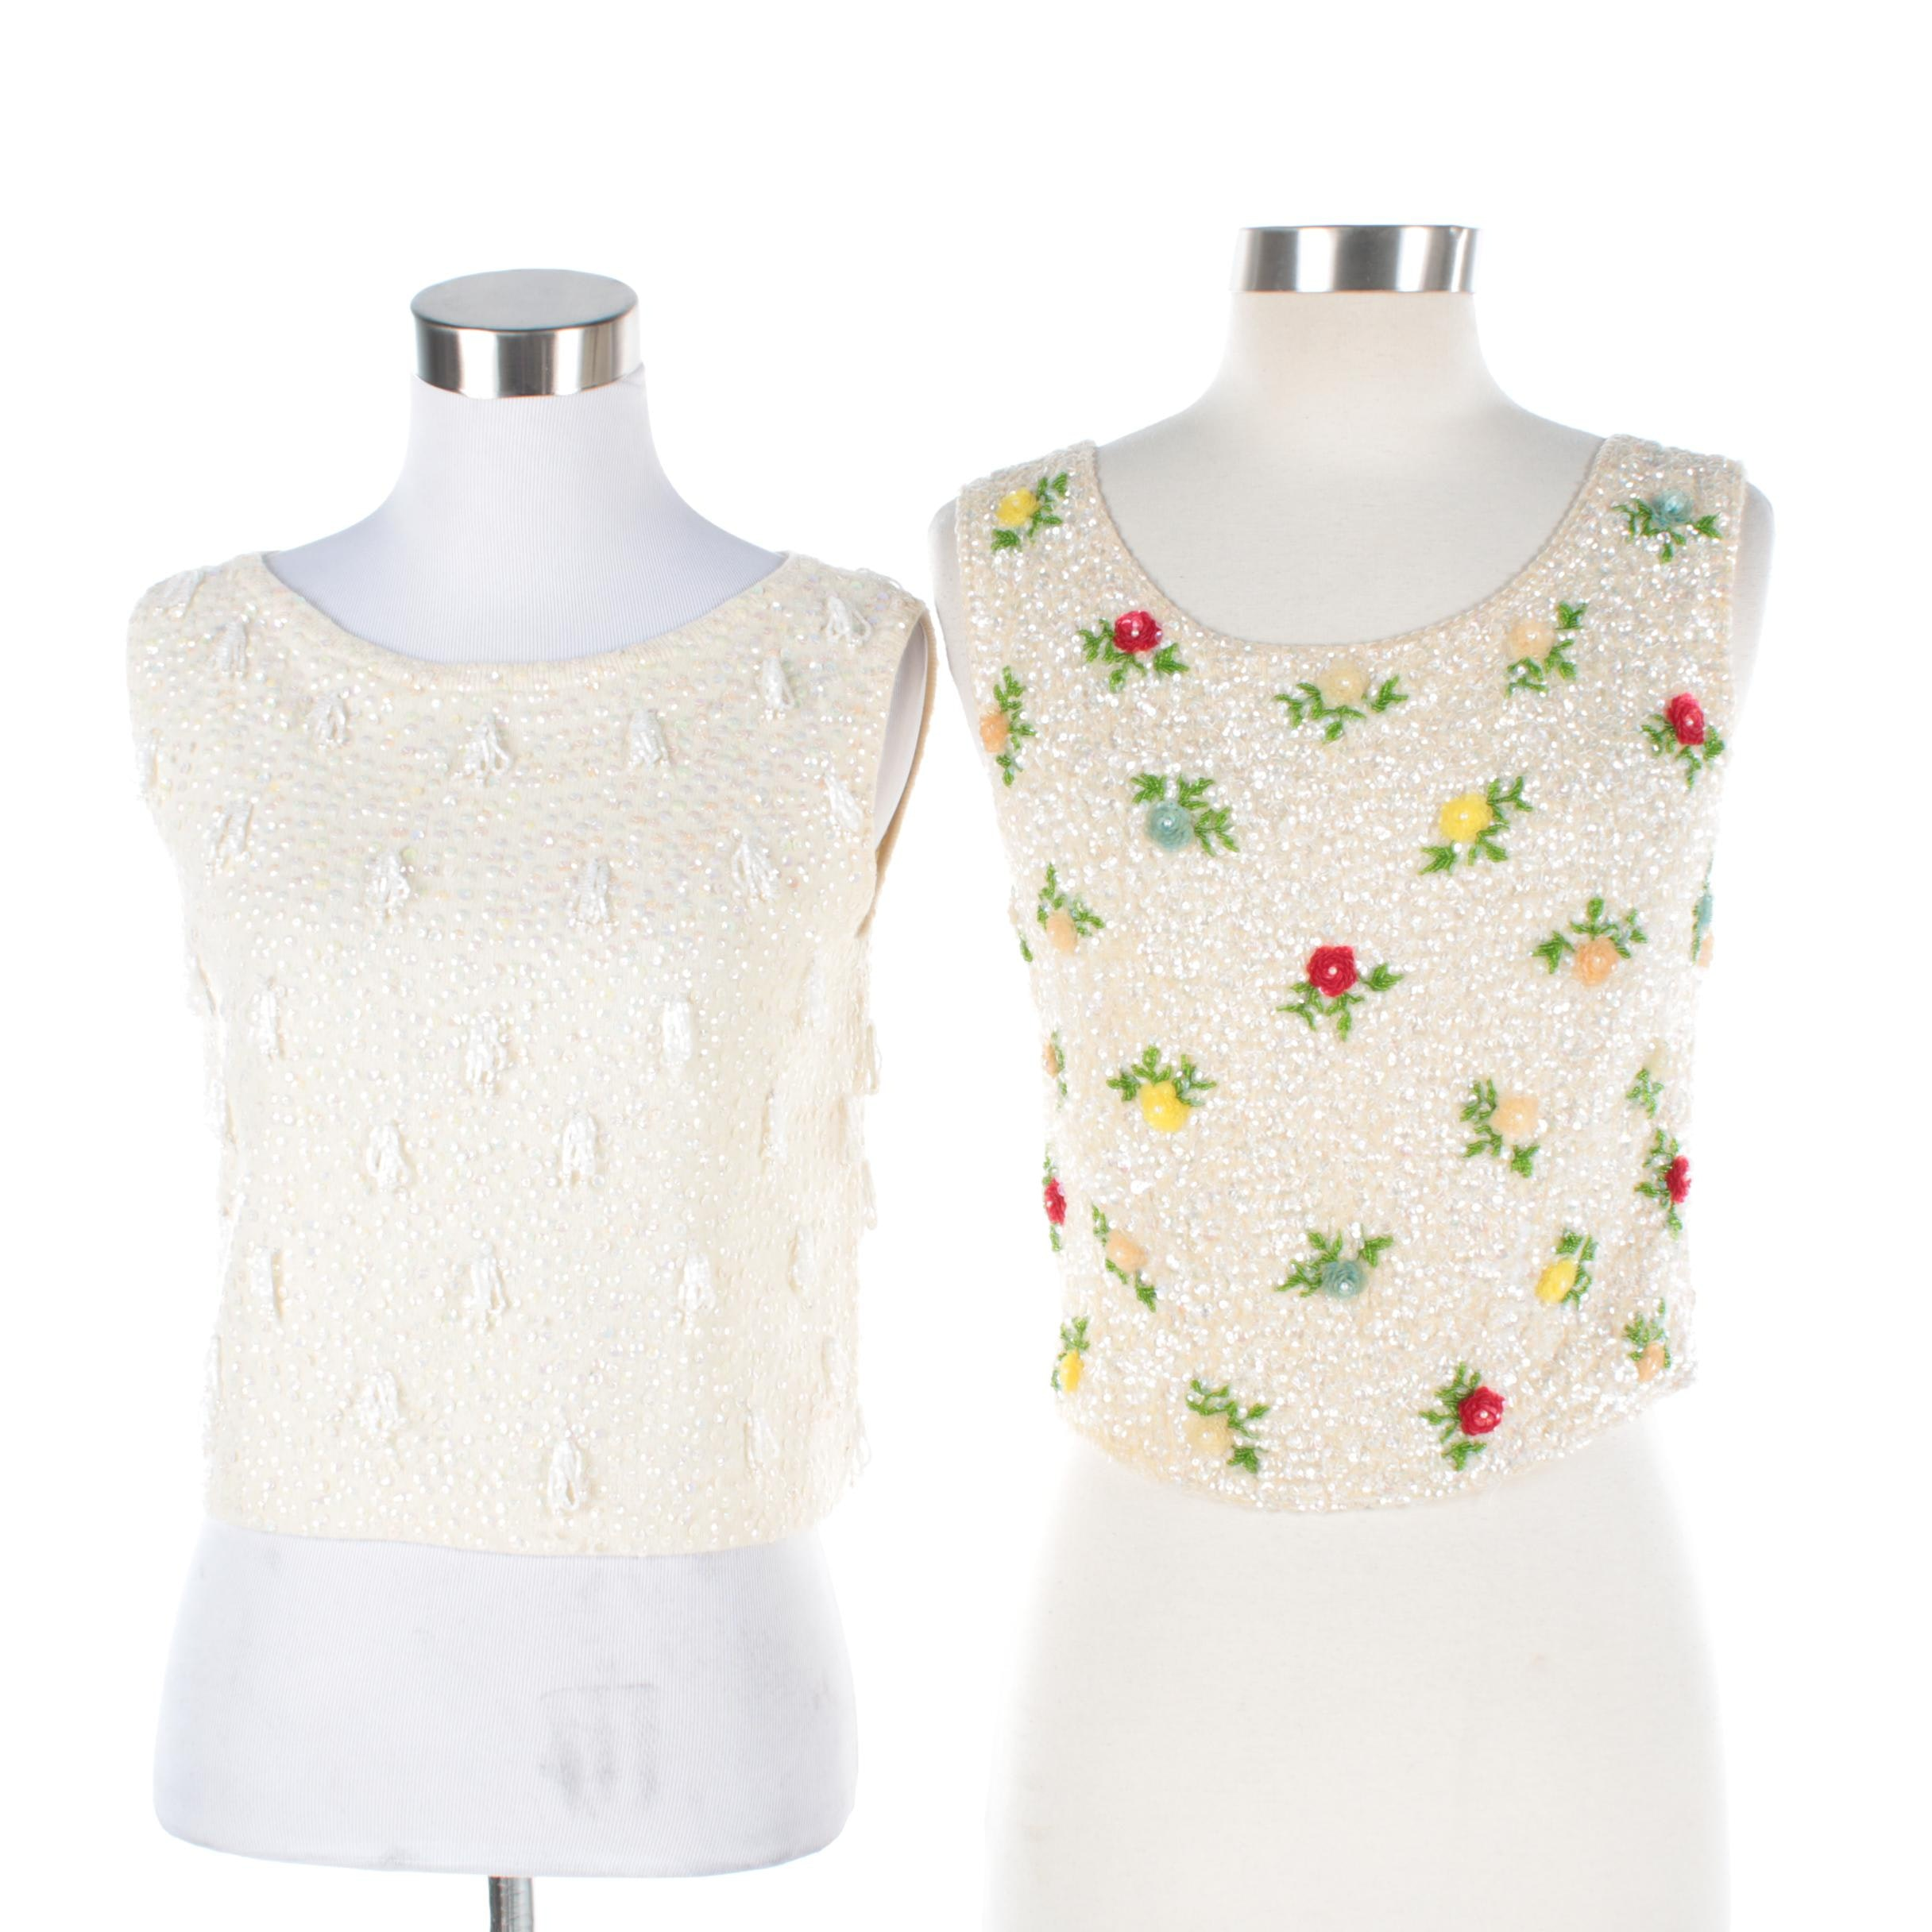 Circa 1950s Vintage Beaded Wool Sleeveless Tops Including House of Gold